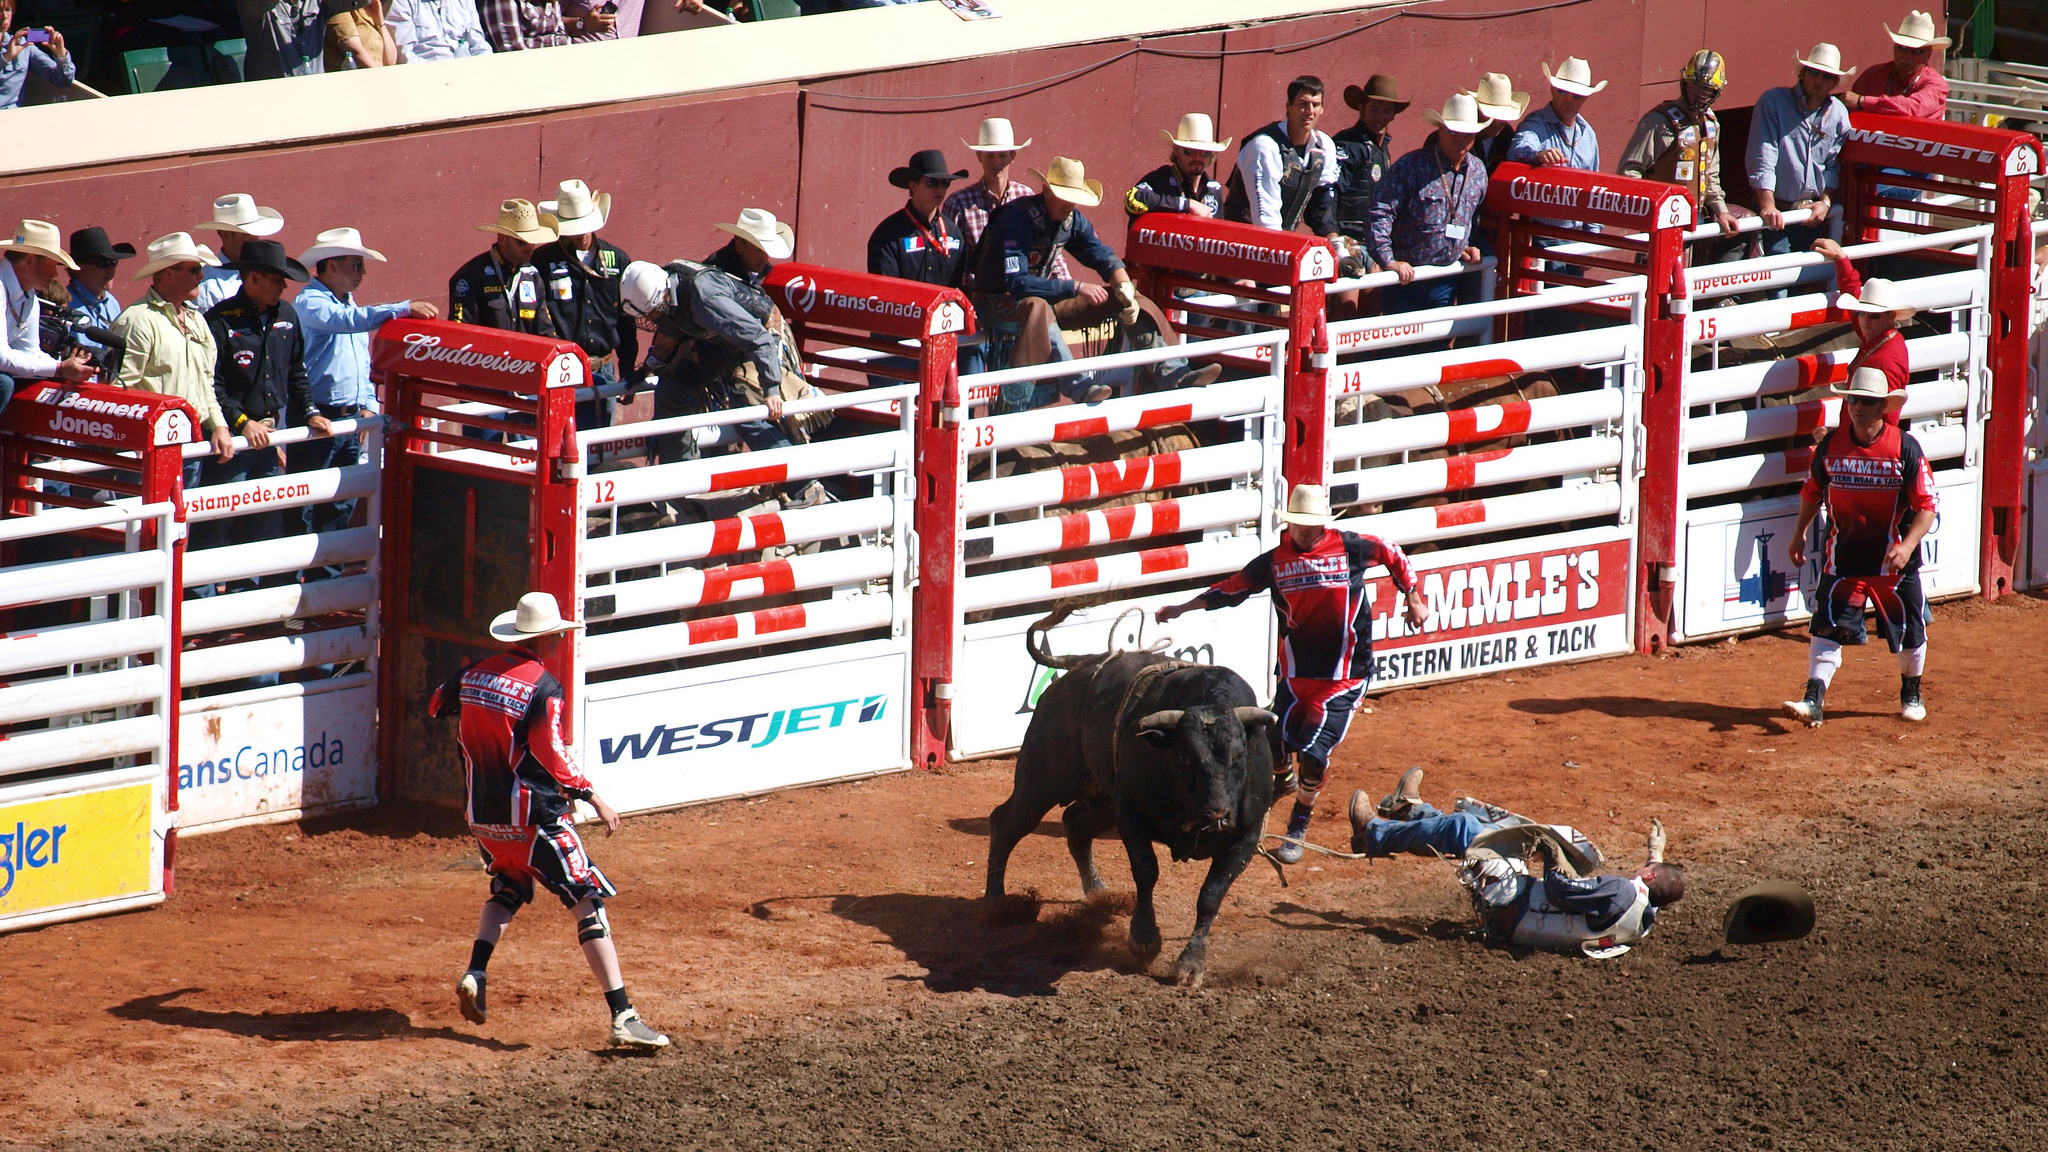 Bull riding wallpapers 62 images - Bull riding wallpapers ...